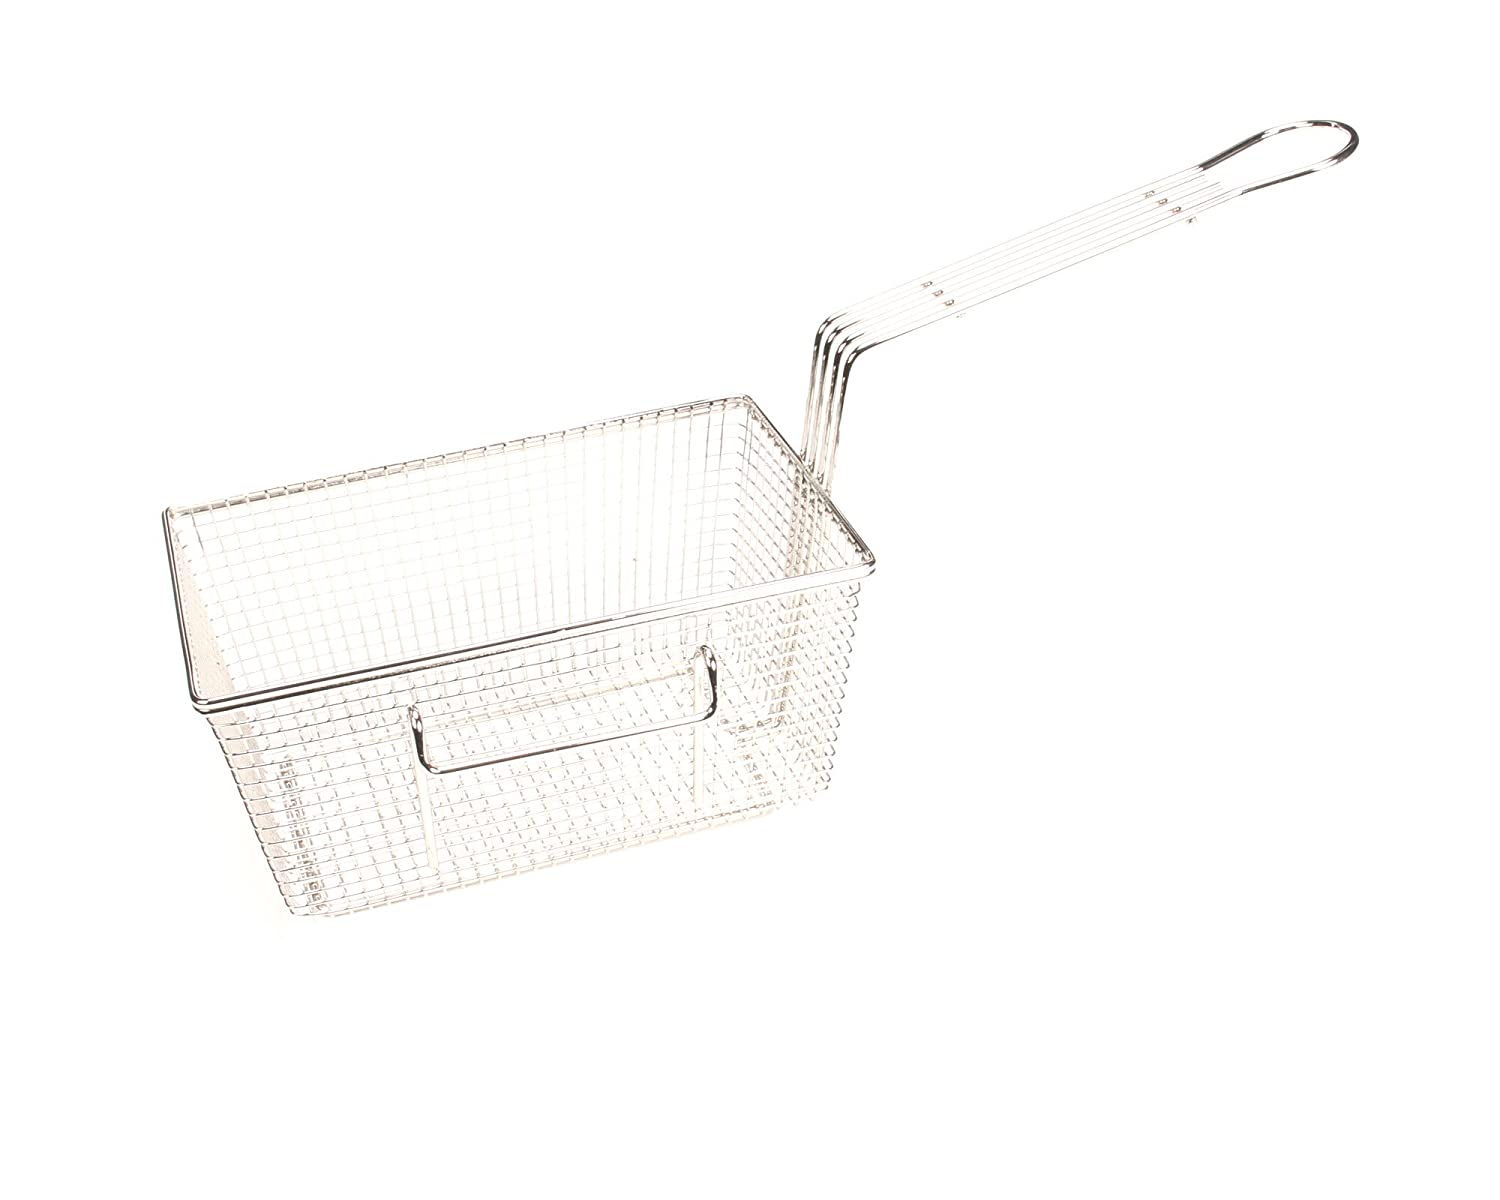 Grindmaster-Cecilware V095A Countertop Fryer Baskets with Left Hook Placement Metal Handles, 28-Pound